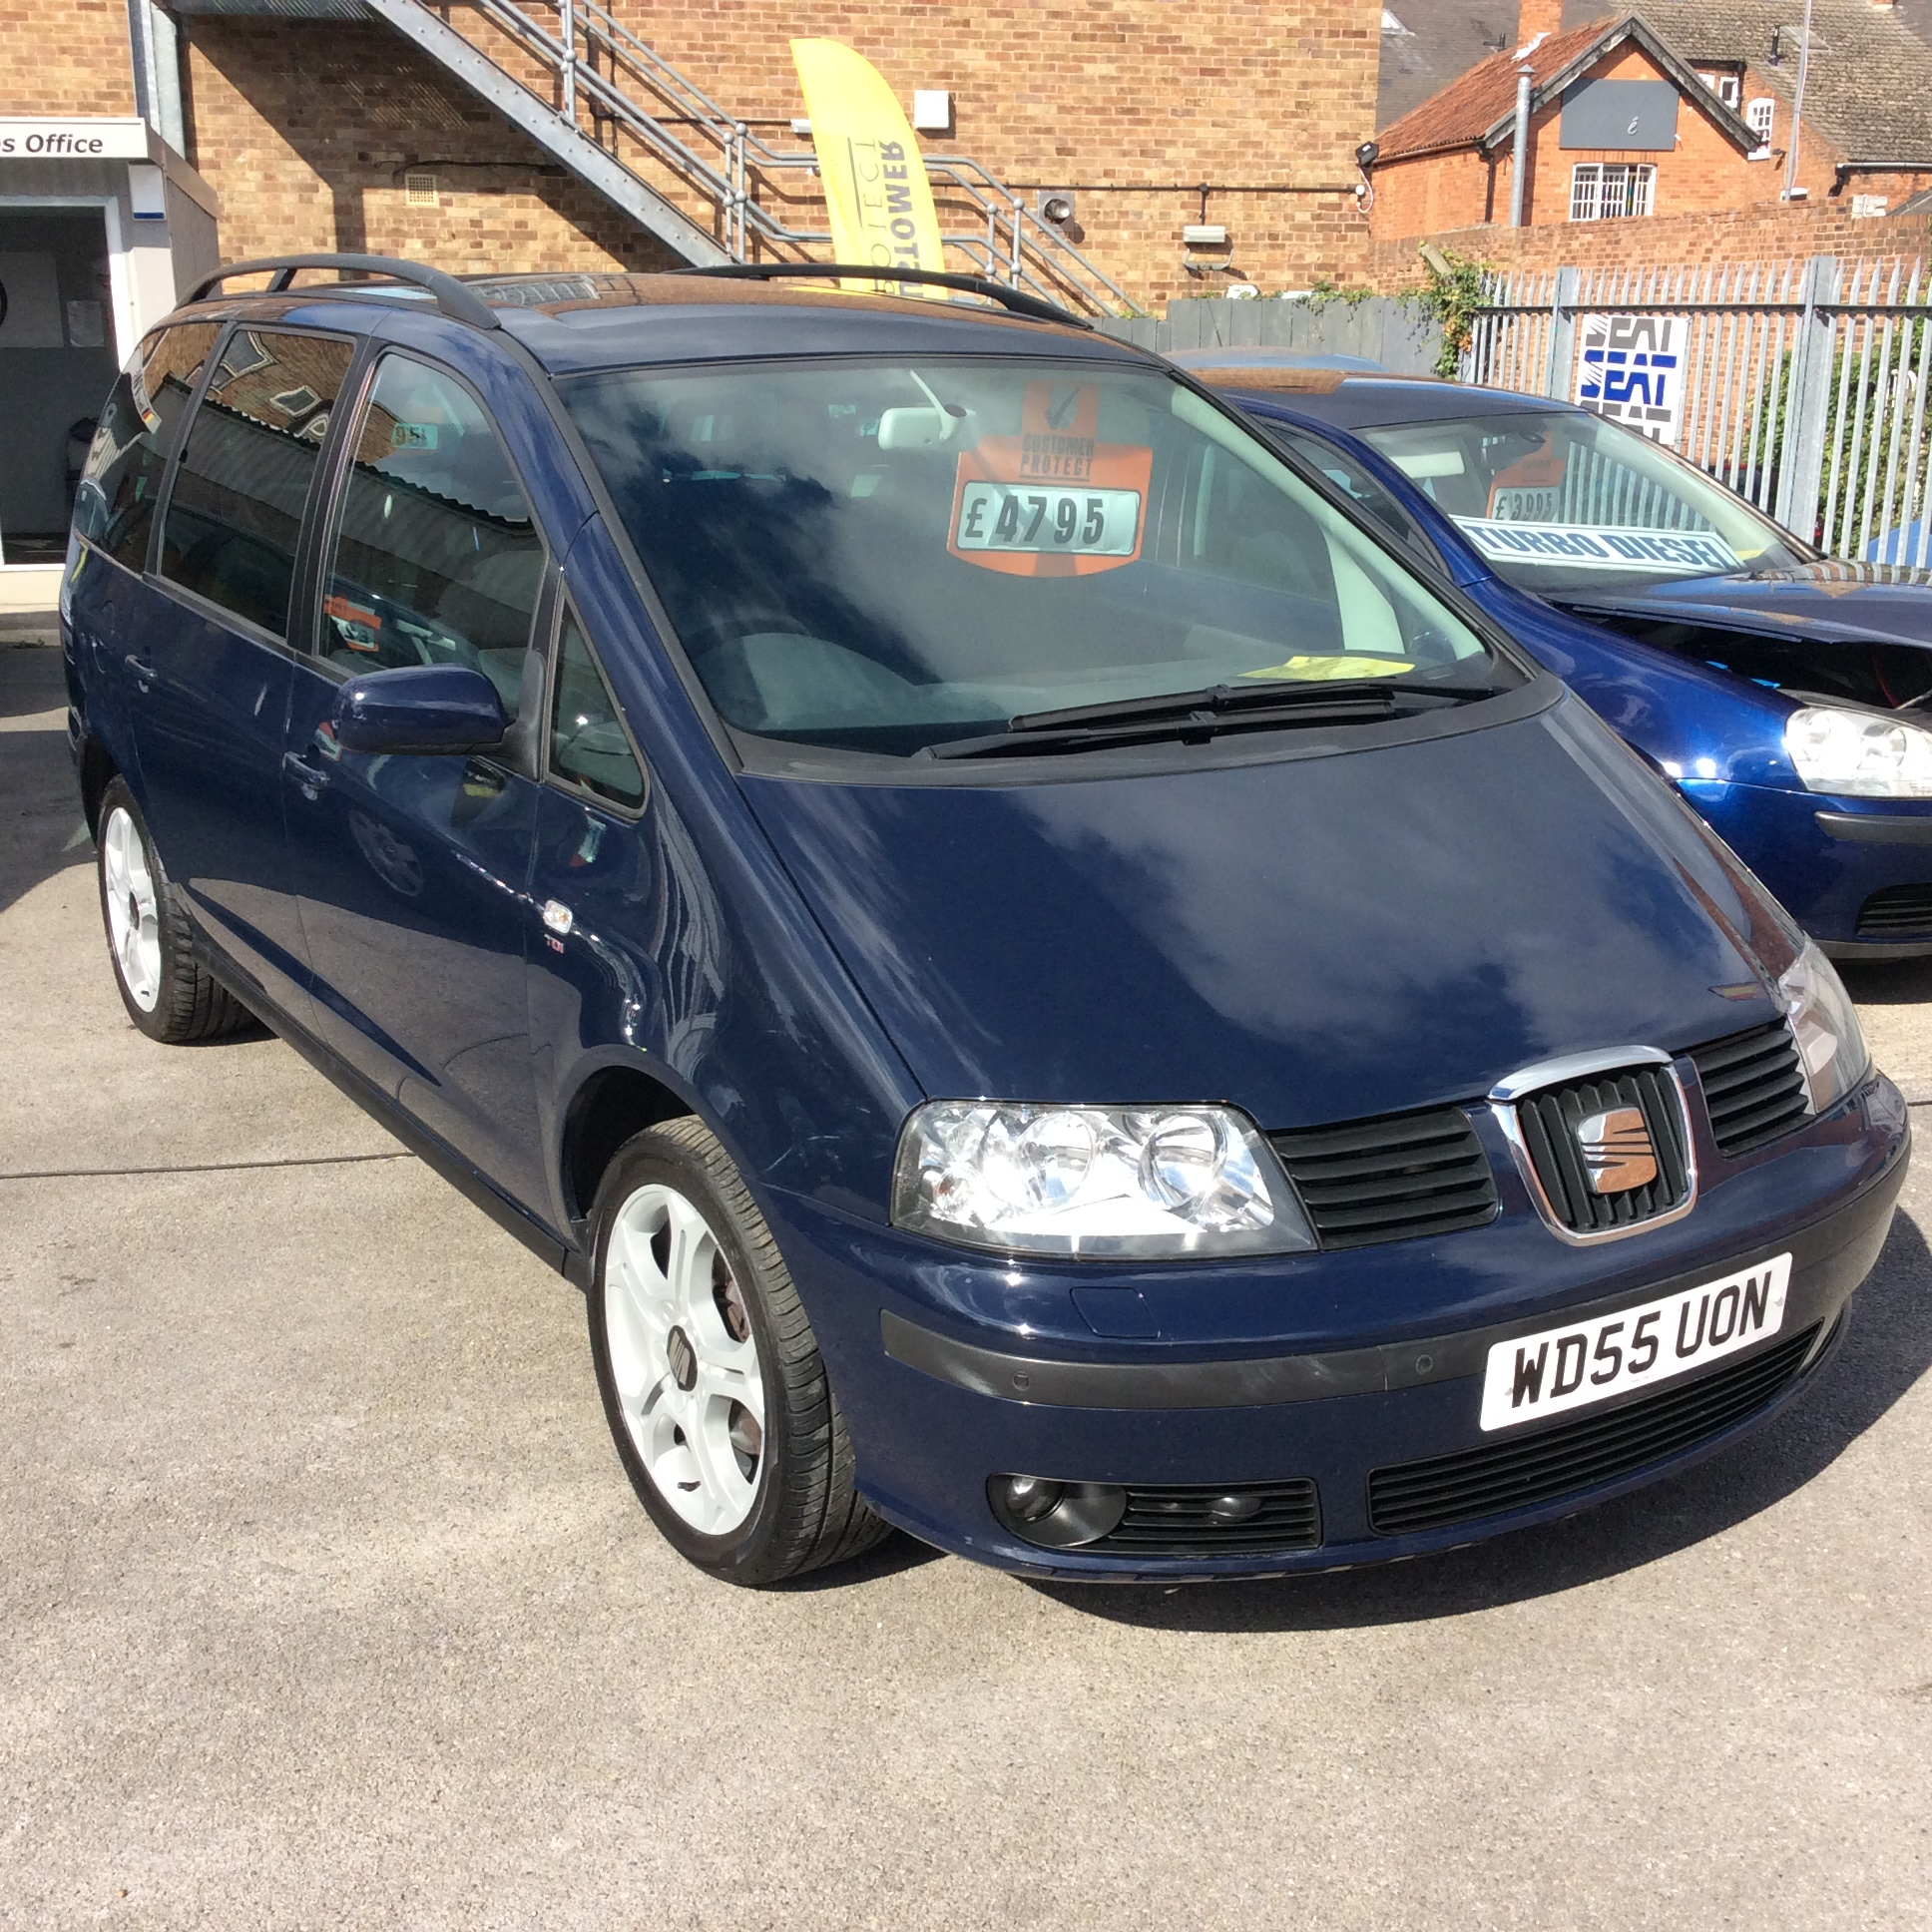 SEAT Alhambra 2.0 2006 Technical Specifications